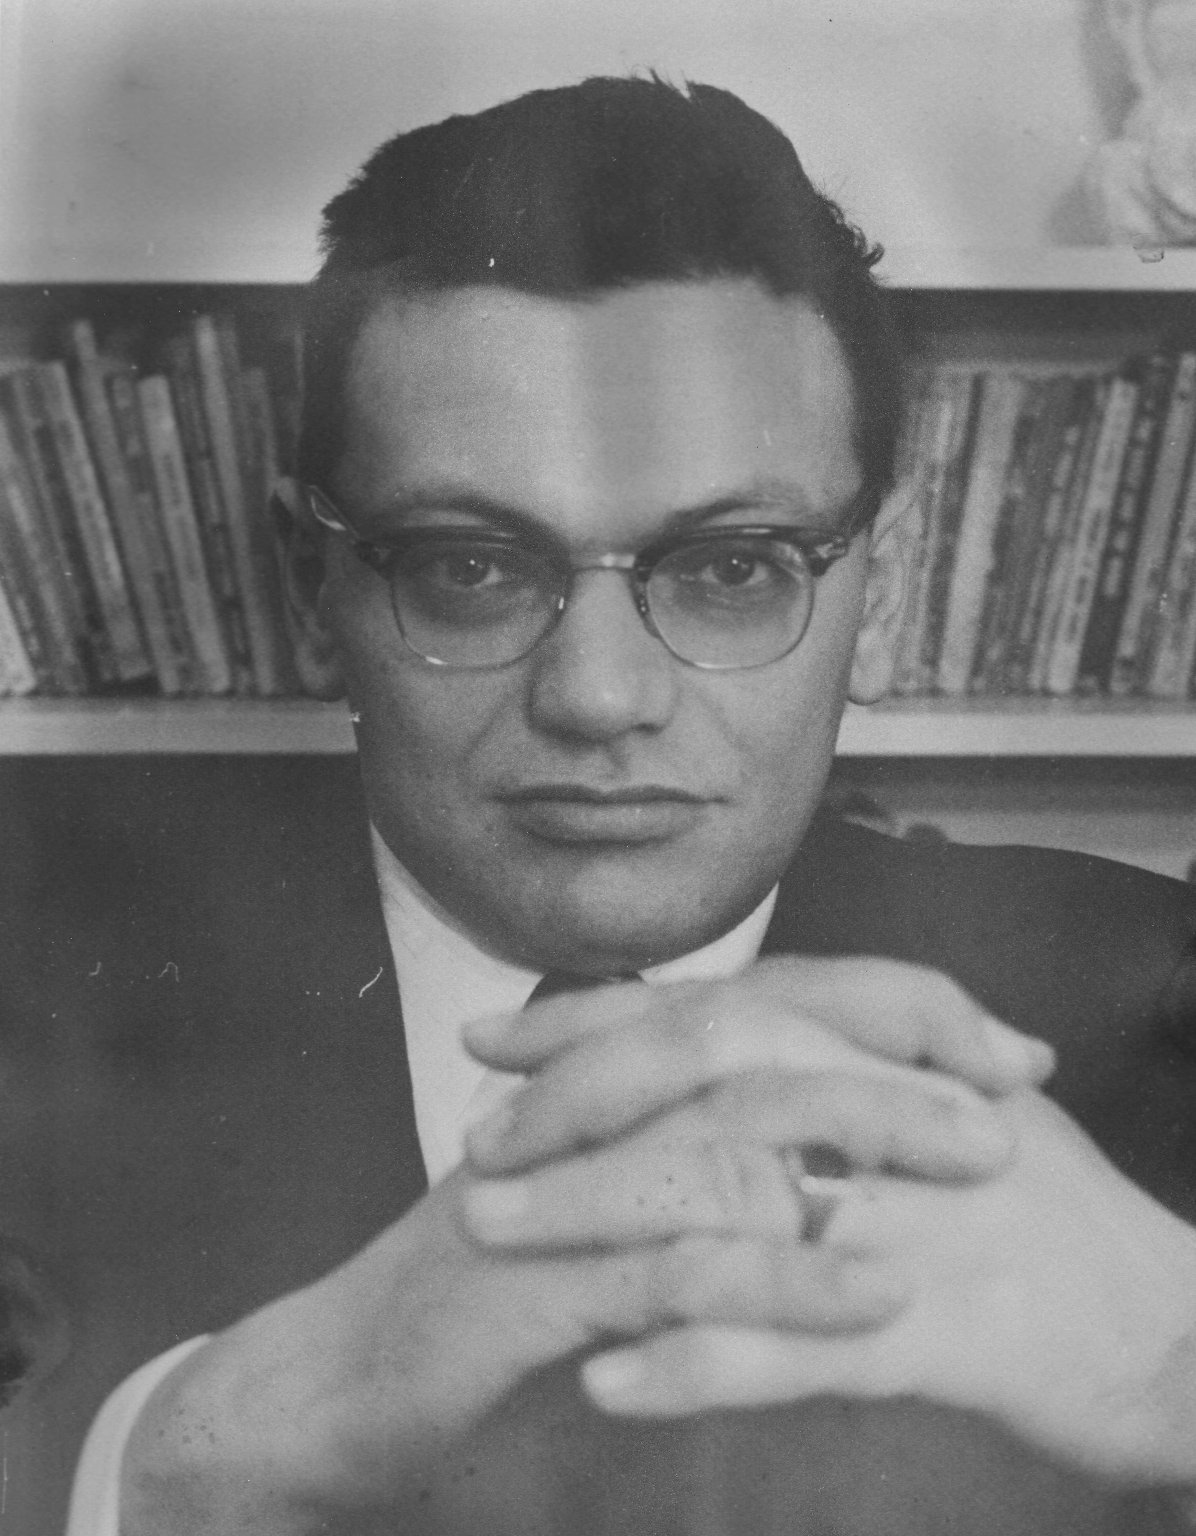 Rabbi Joseph Hayyim Schachter, the younger brother of Rabbi Zalman Schachter, ca. 1960.